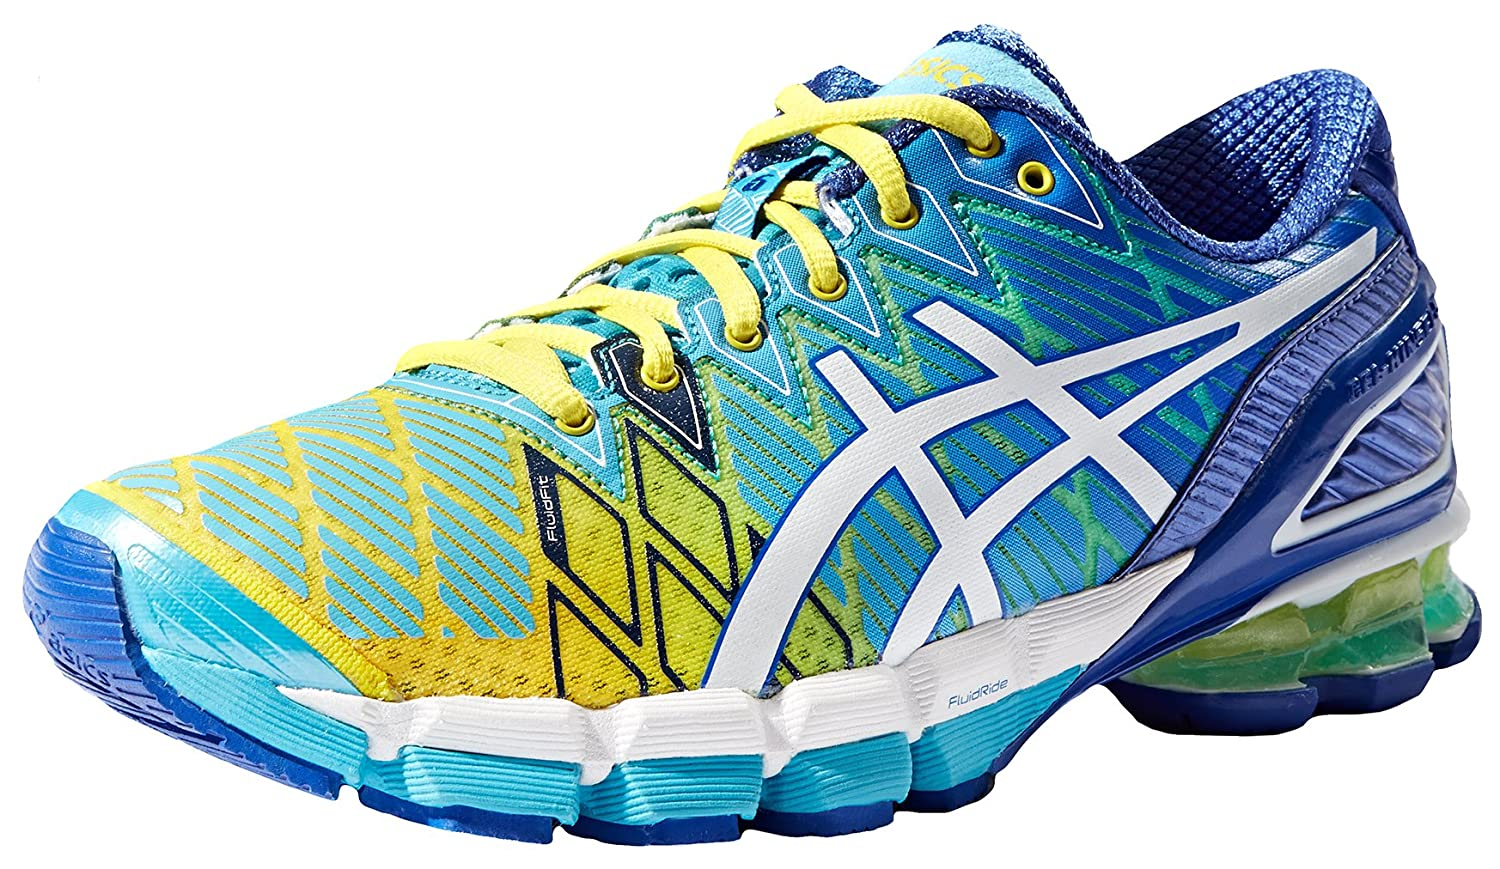 promo code affcc fd8f4 ASICS Women s Gel-Kinsei 5 Running Shoe,Yellow White Turquoise,9.5 M US   Amazon.in  Shoes   Handbags